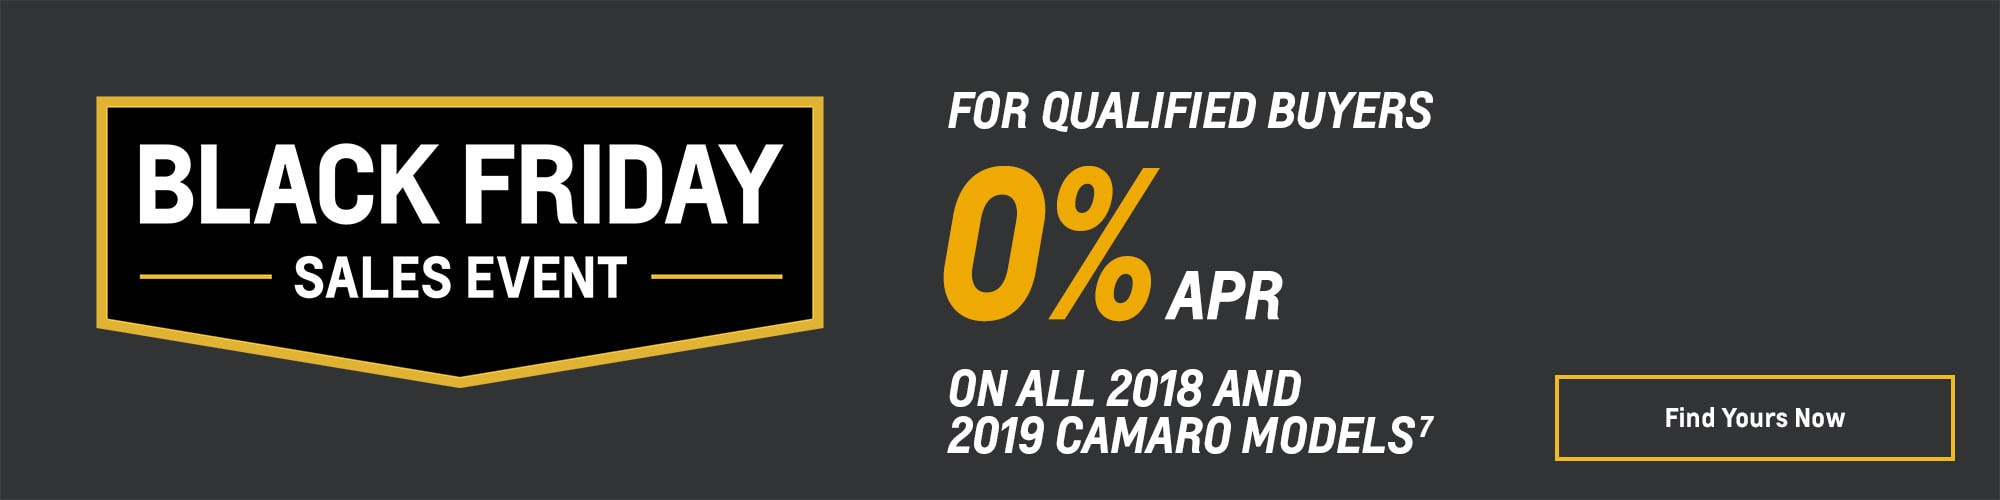 Black Friday Chevy Deals and Offers: Camaro 0% APR